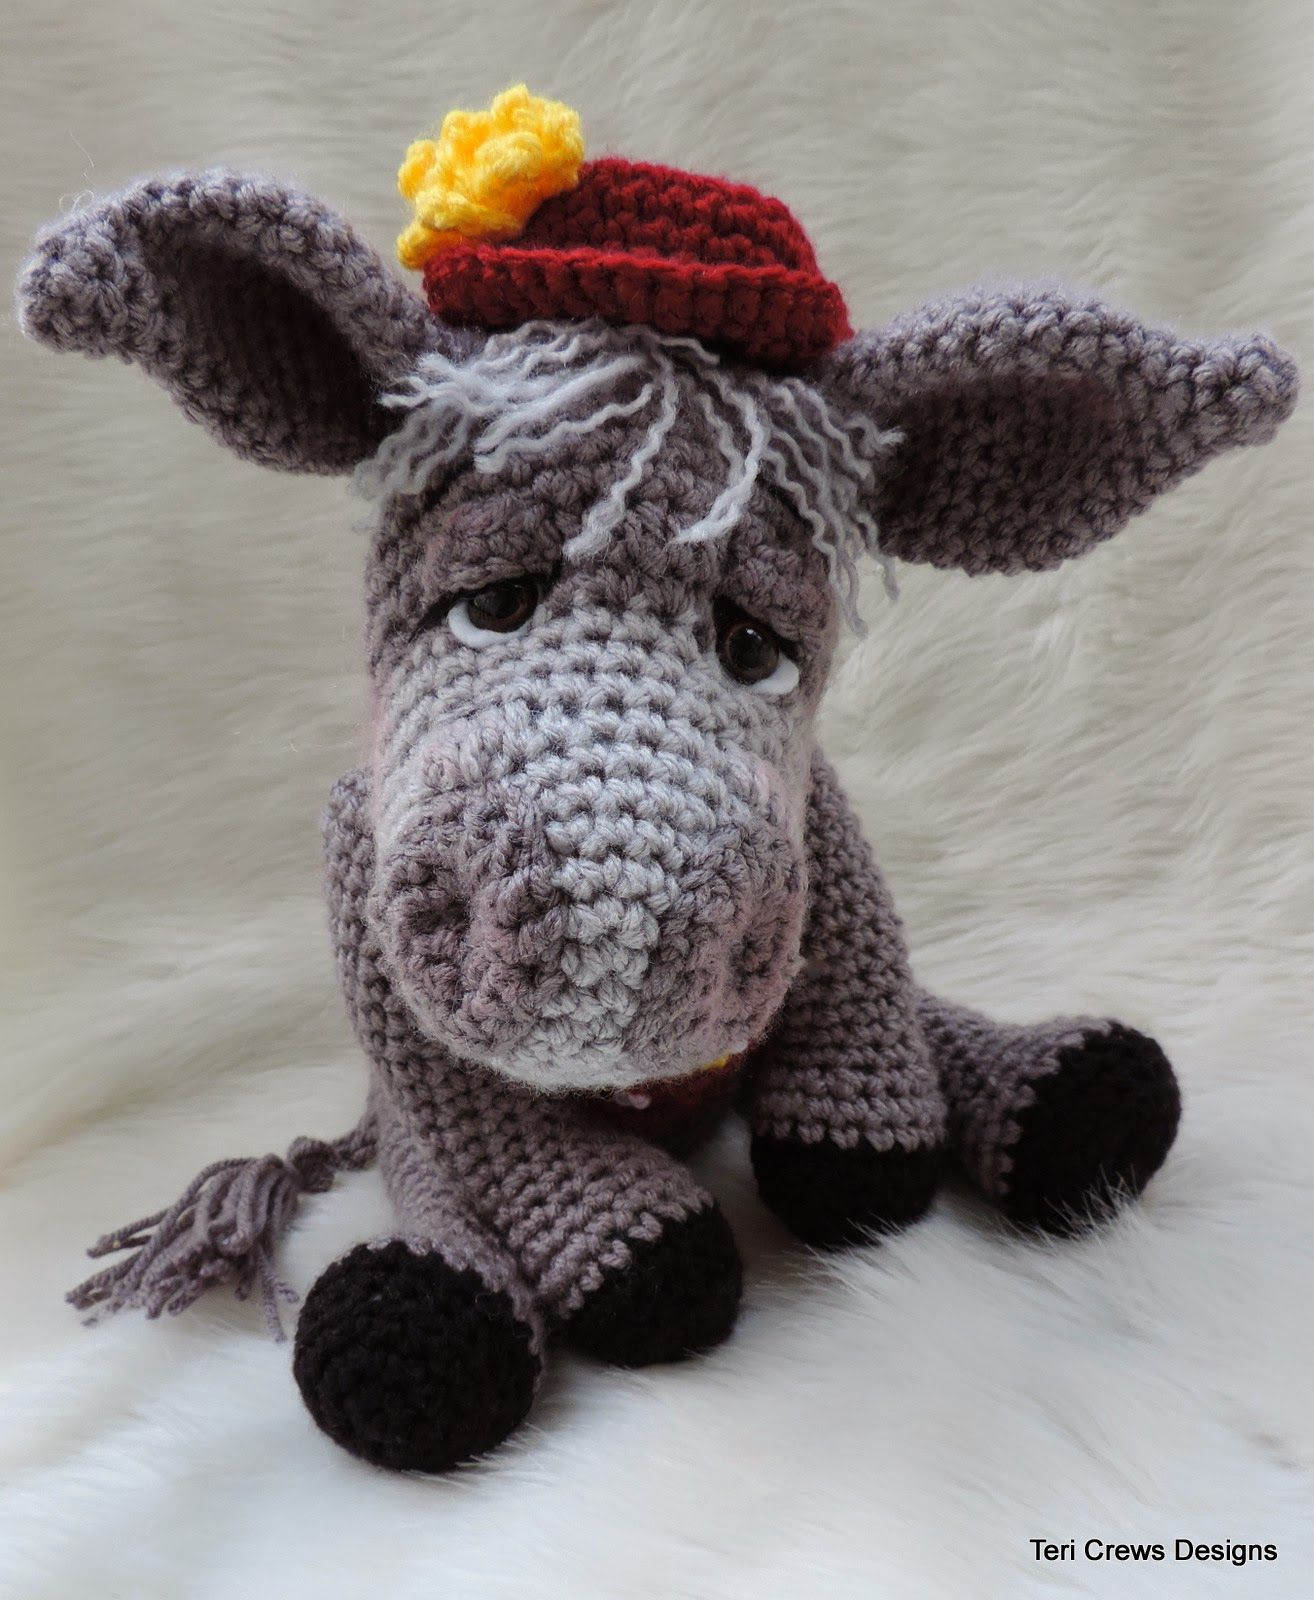 New Donkey Crochet Pattern | Hand made ideas | Pinterest ...